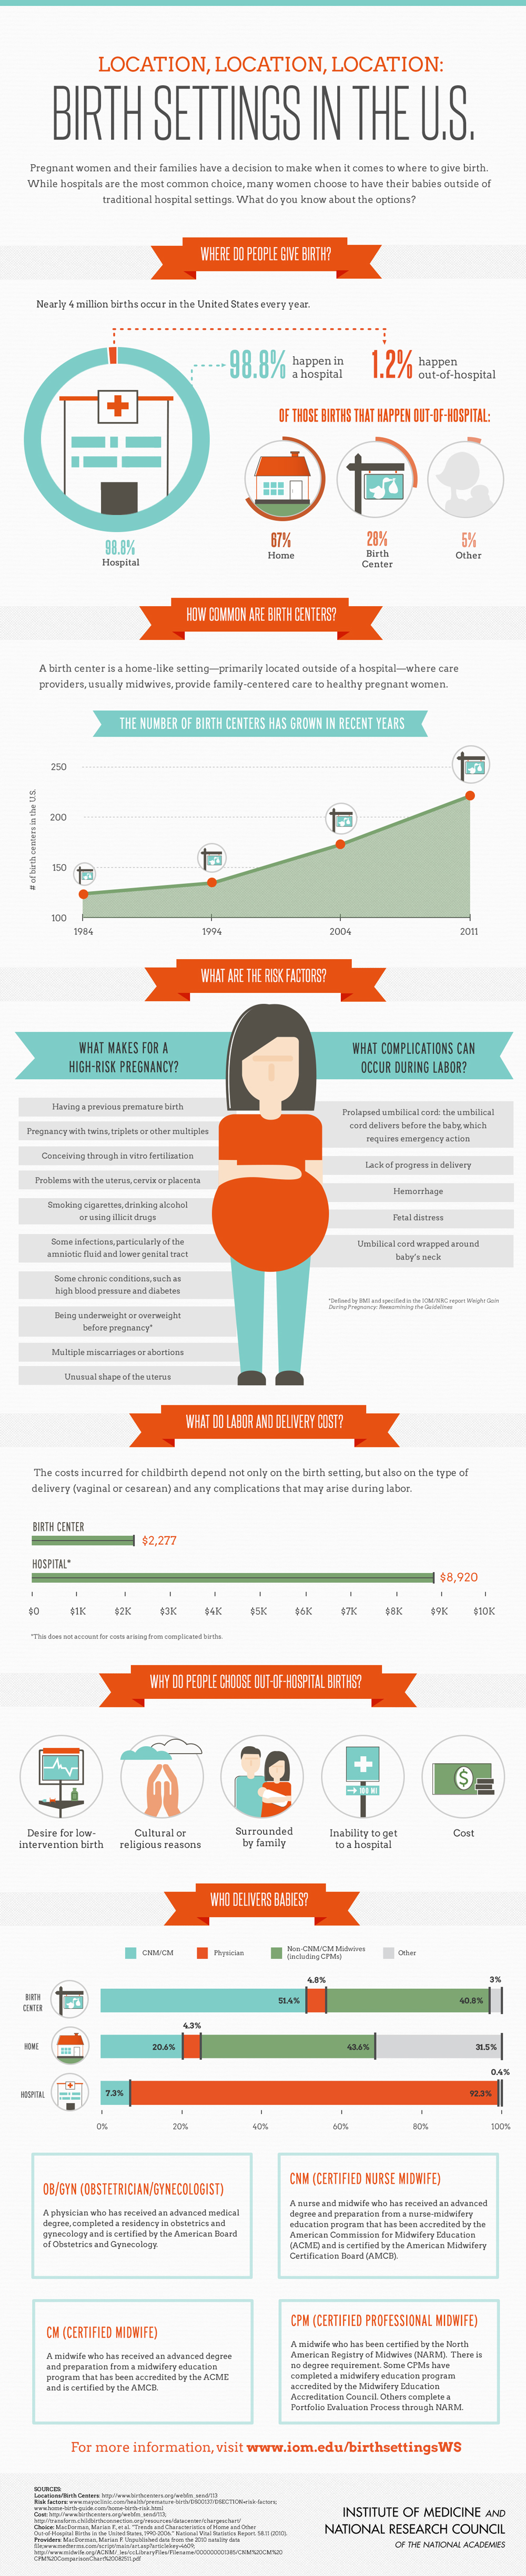 Birth Settings In The U.S.: Options For Birth